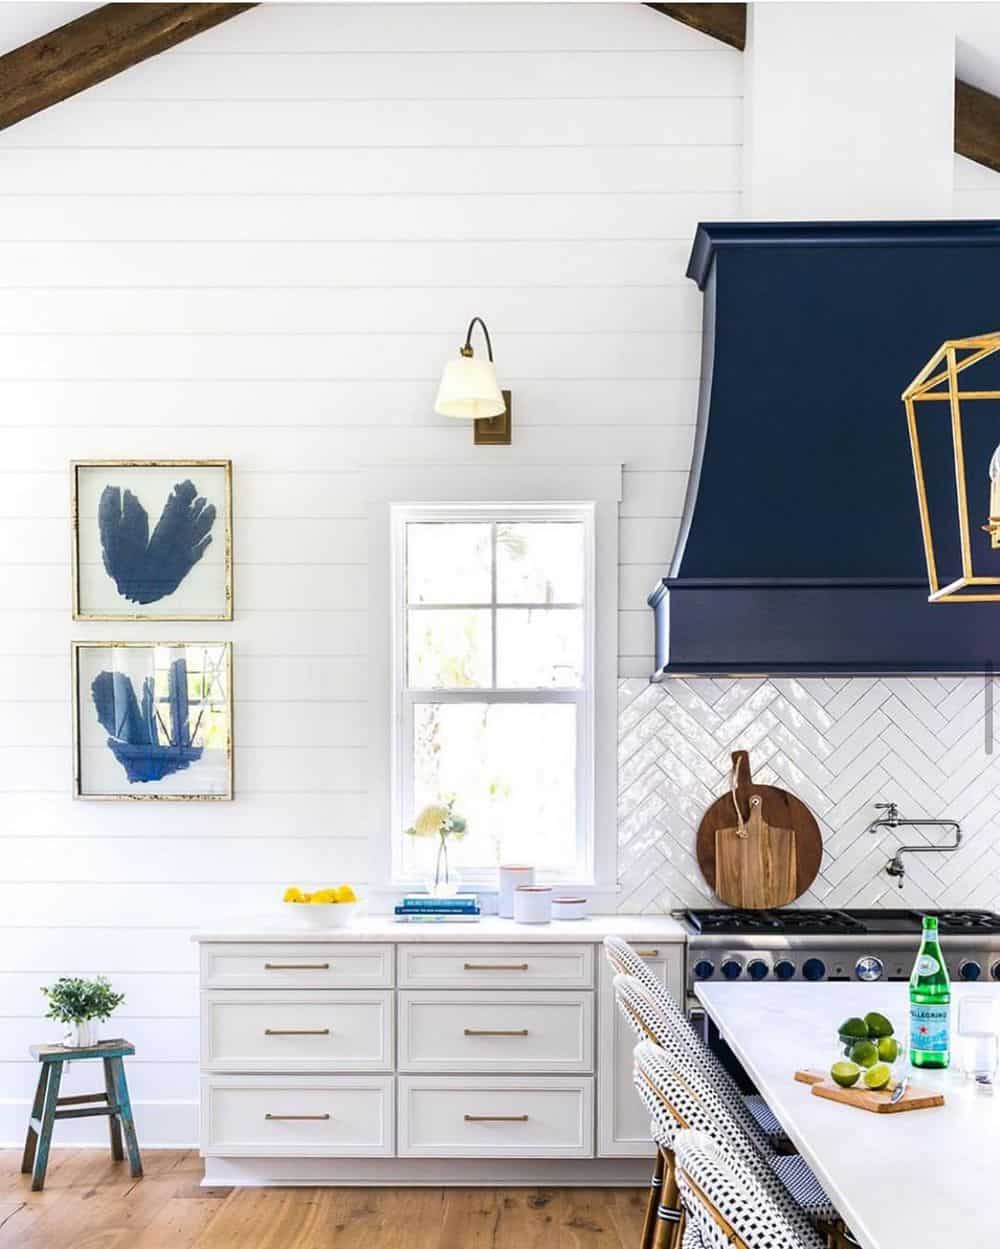 Timeless Kitchen Designs You Will Fall in Love With - White and Blue Combination